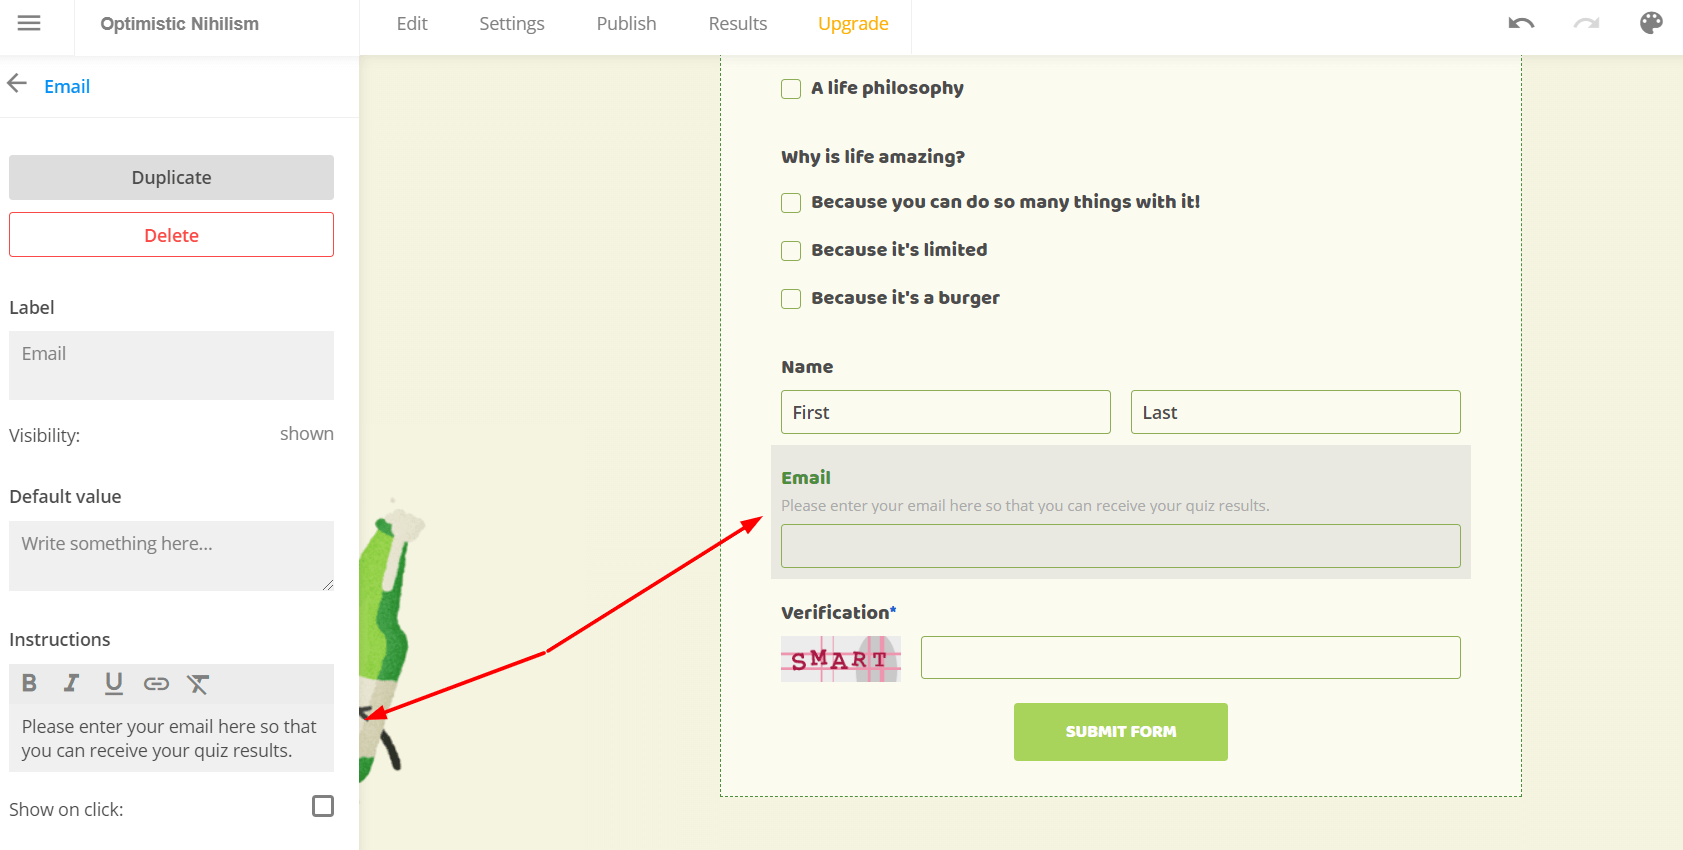 booking form with email field instructions